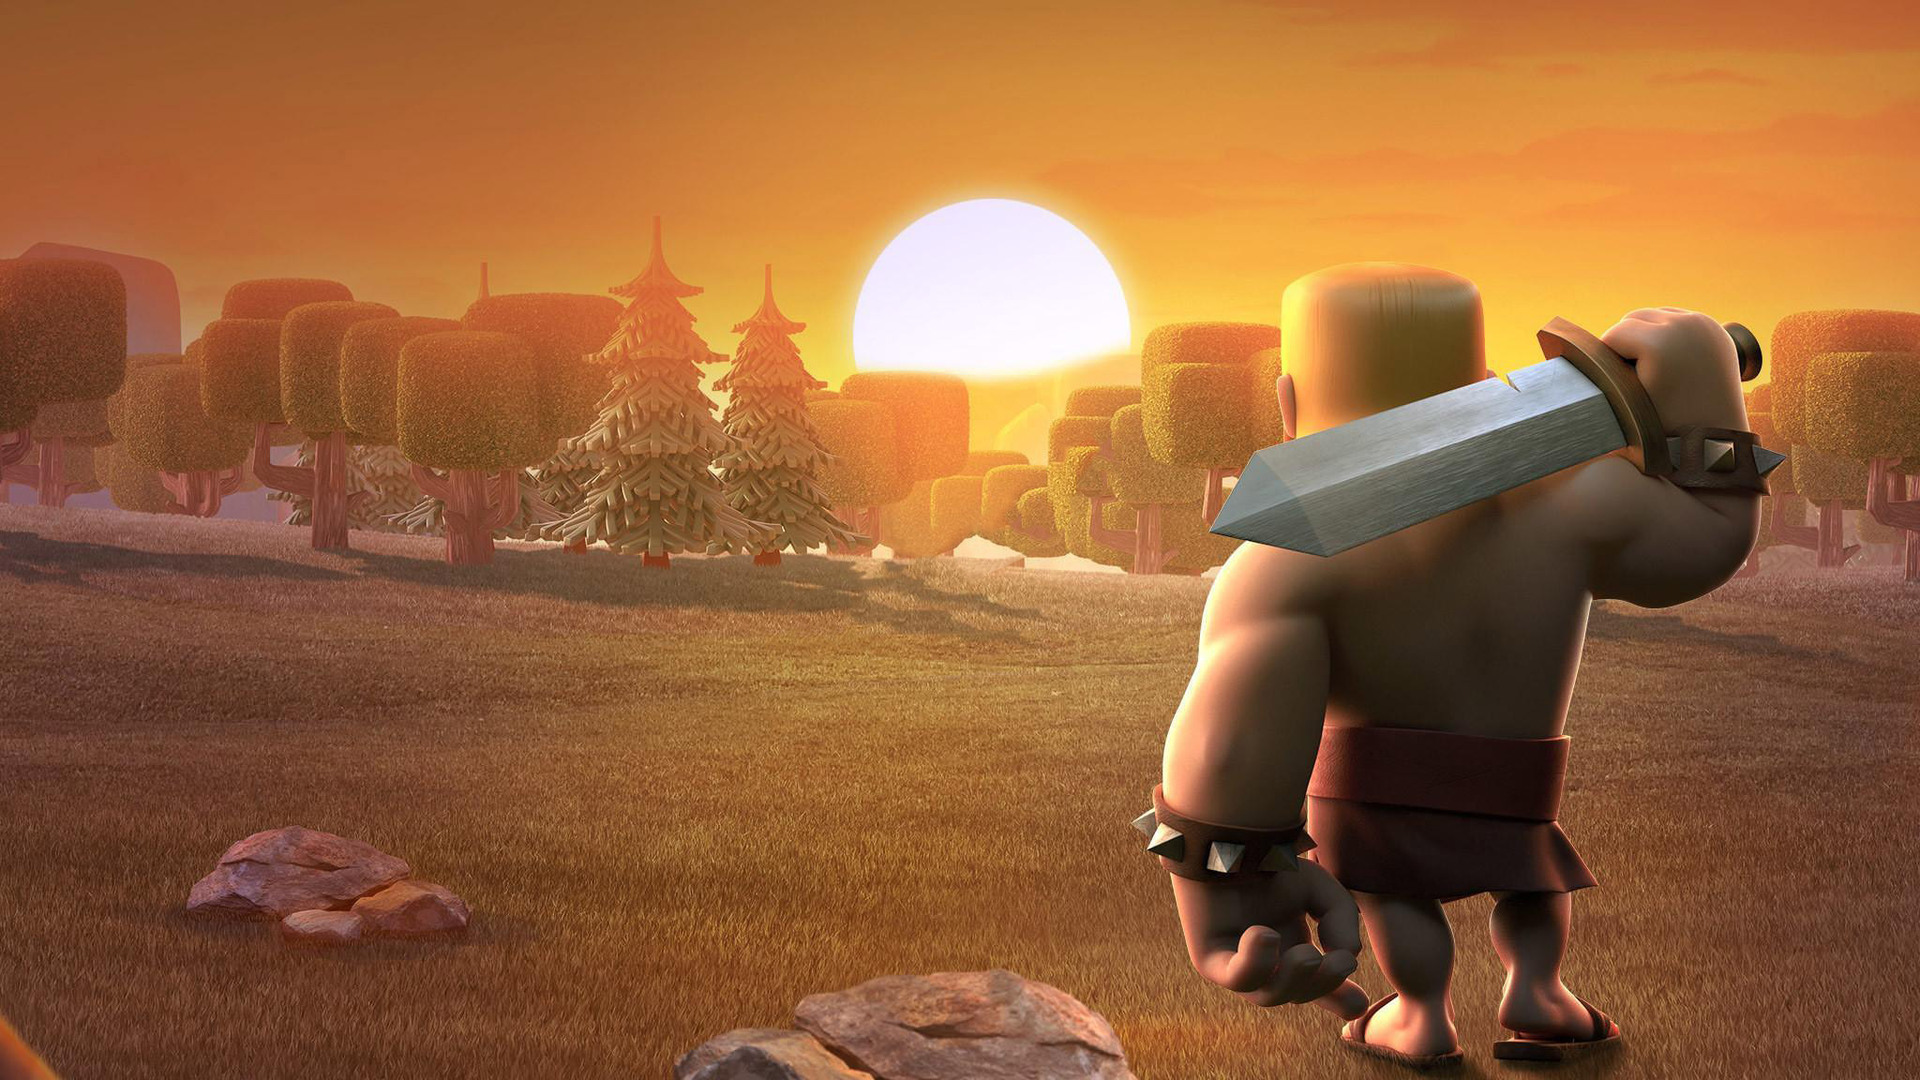 Barbarian Clash Of Clans Hd Hd Games 4k Wallpapers: 1920x1080 Barbarians Clash Of Clans Laptop Full HD 1080P